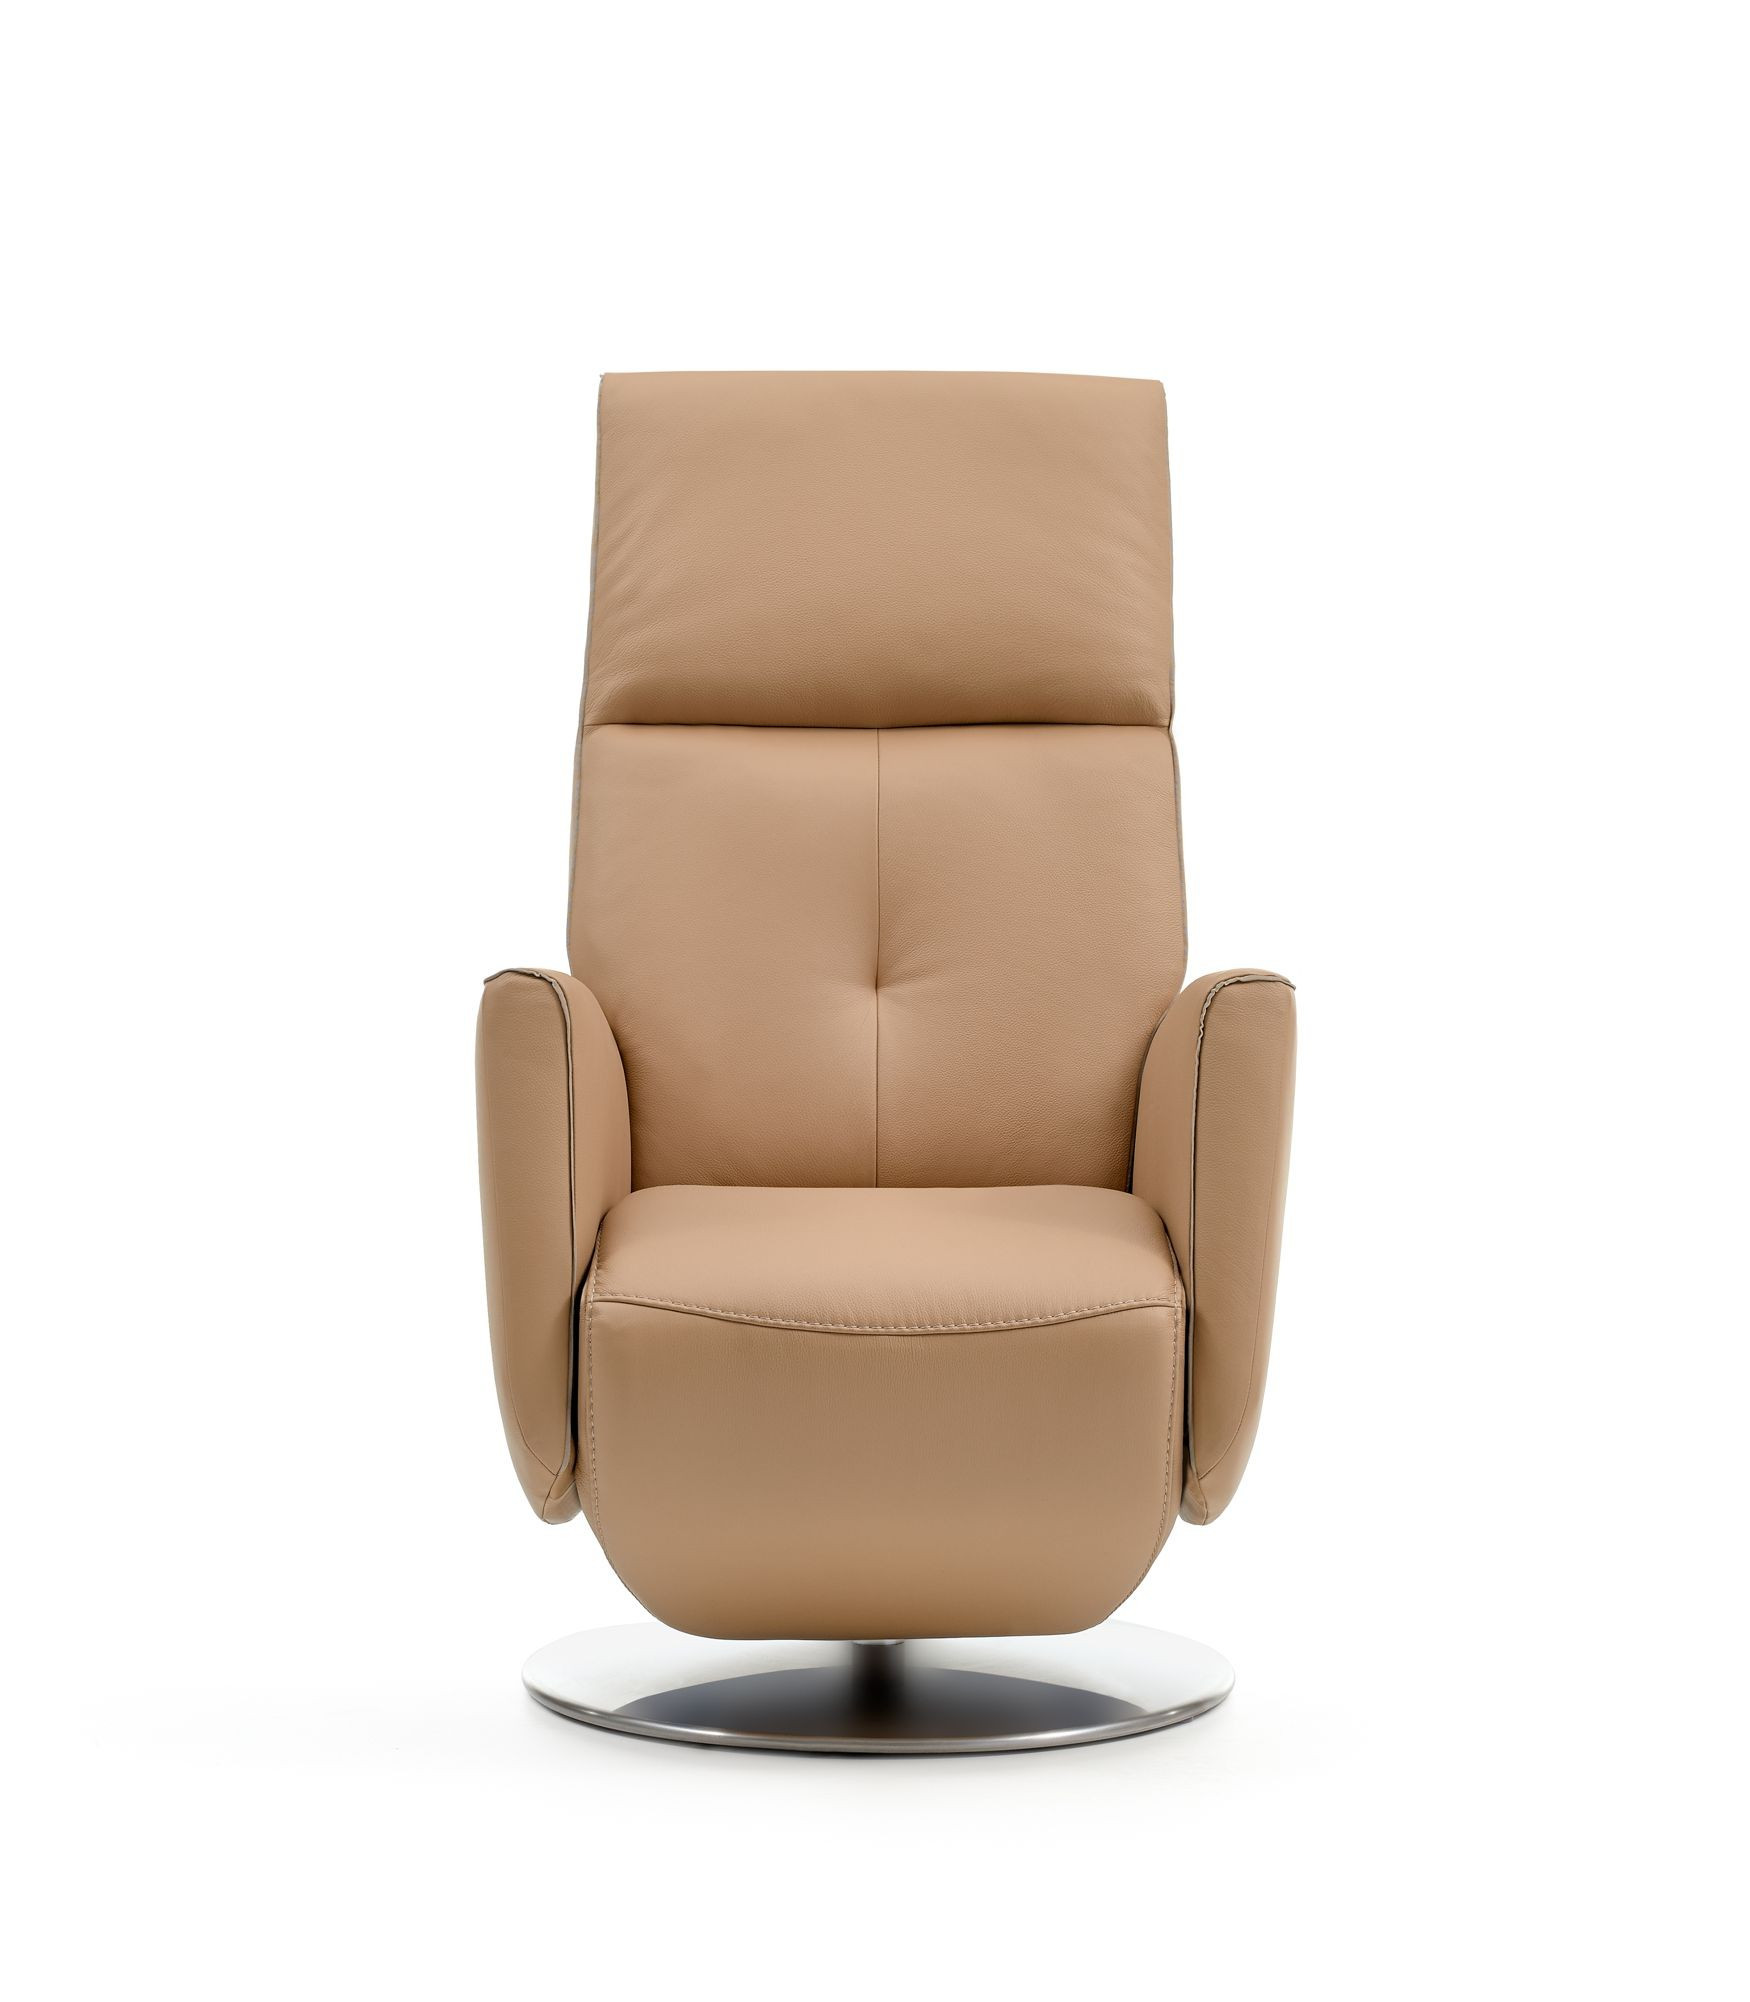 Best ideas about Modern Recliner Chair . Save or Pin THALGO Modern Recliner with Electric Motion Now.